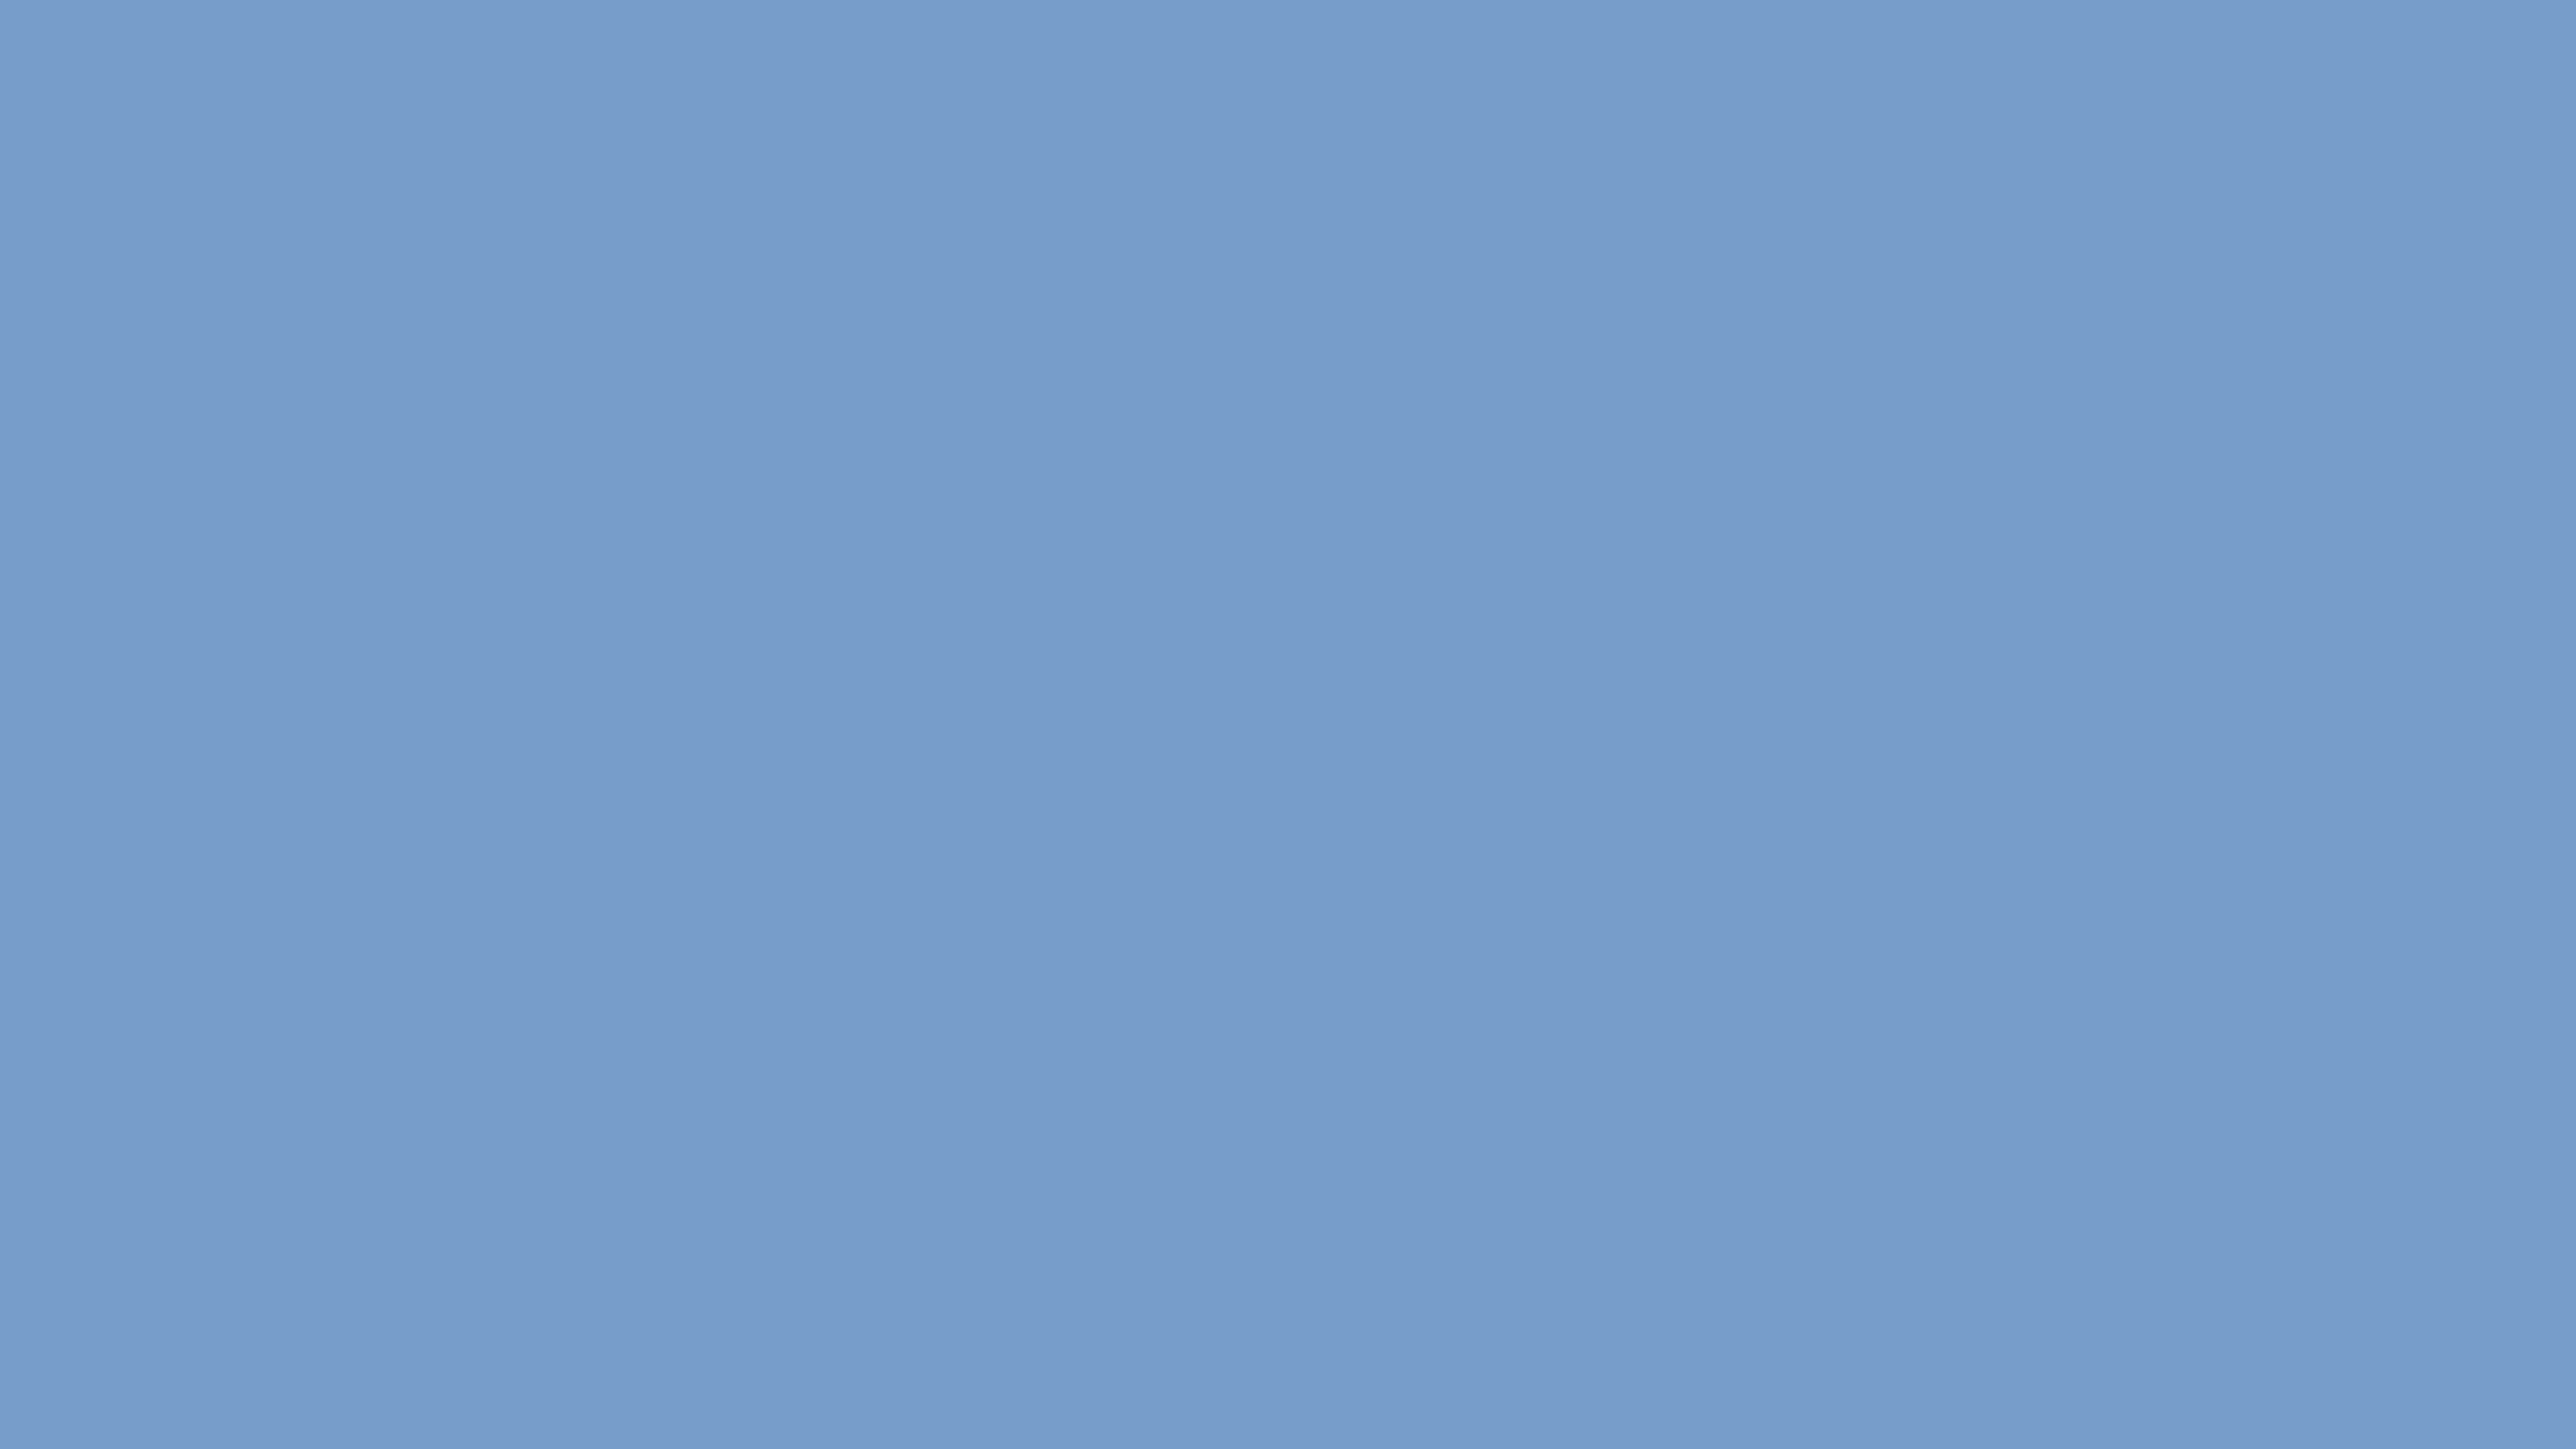 3840x2160 Dark Pastel Blue Solid Color Background